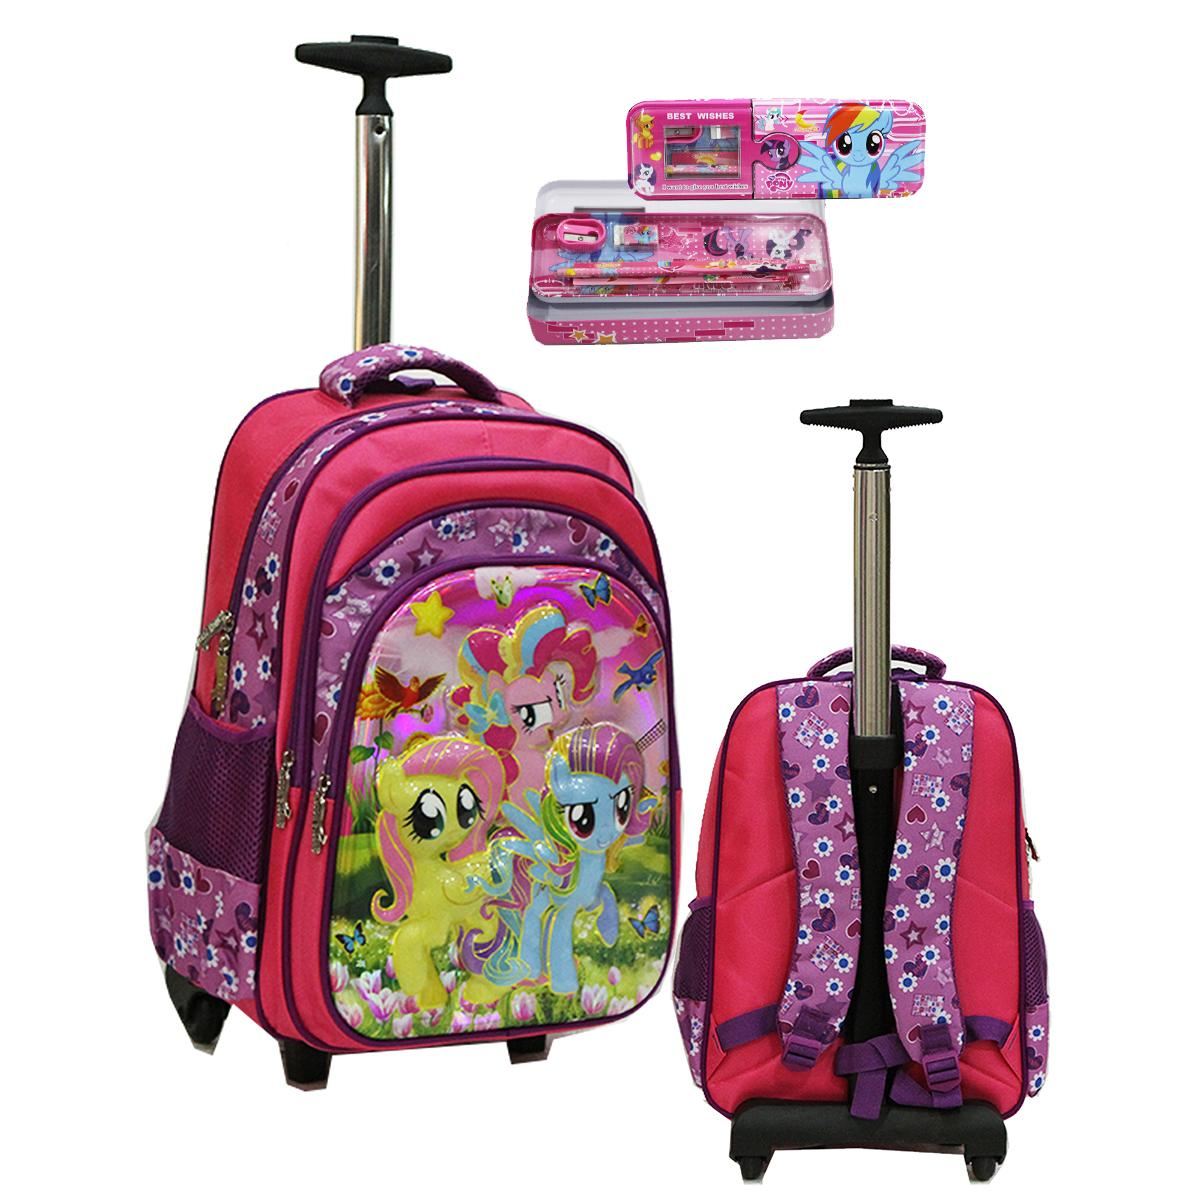 Onlan My Little Pony 6D Timbul Tas Trolley SD Gagang Stainless Dan Kotak Pensil Set Alat Tulis Import